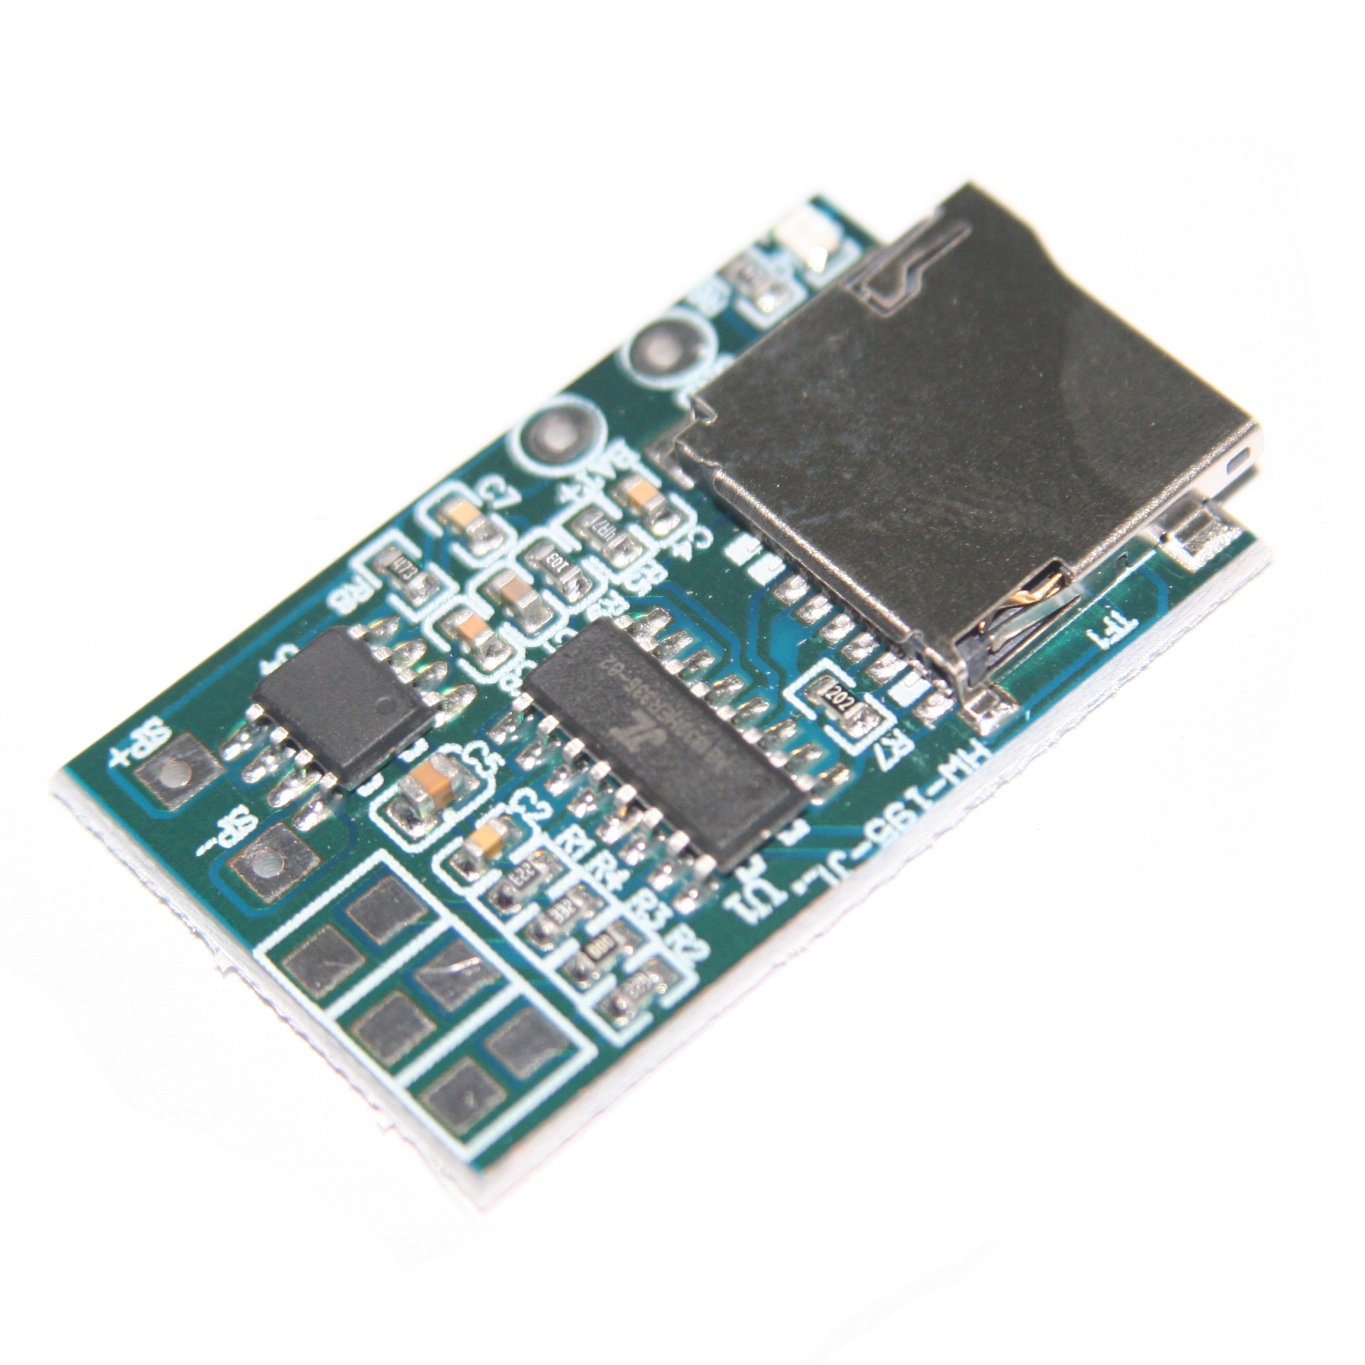 Sweet-Tempered Gpd2846a Tf Card Mp3 Decoder Board 2w Amplifier Module Integrated Circuits